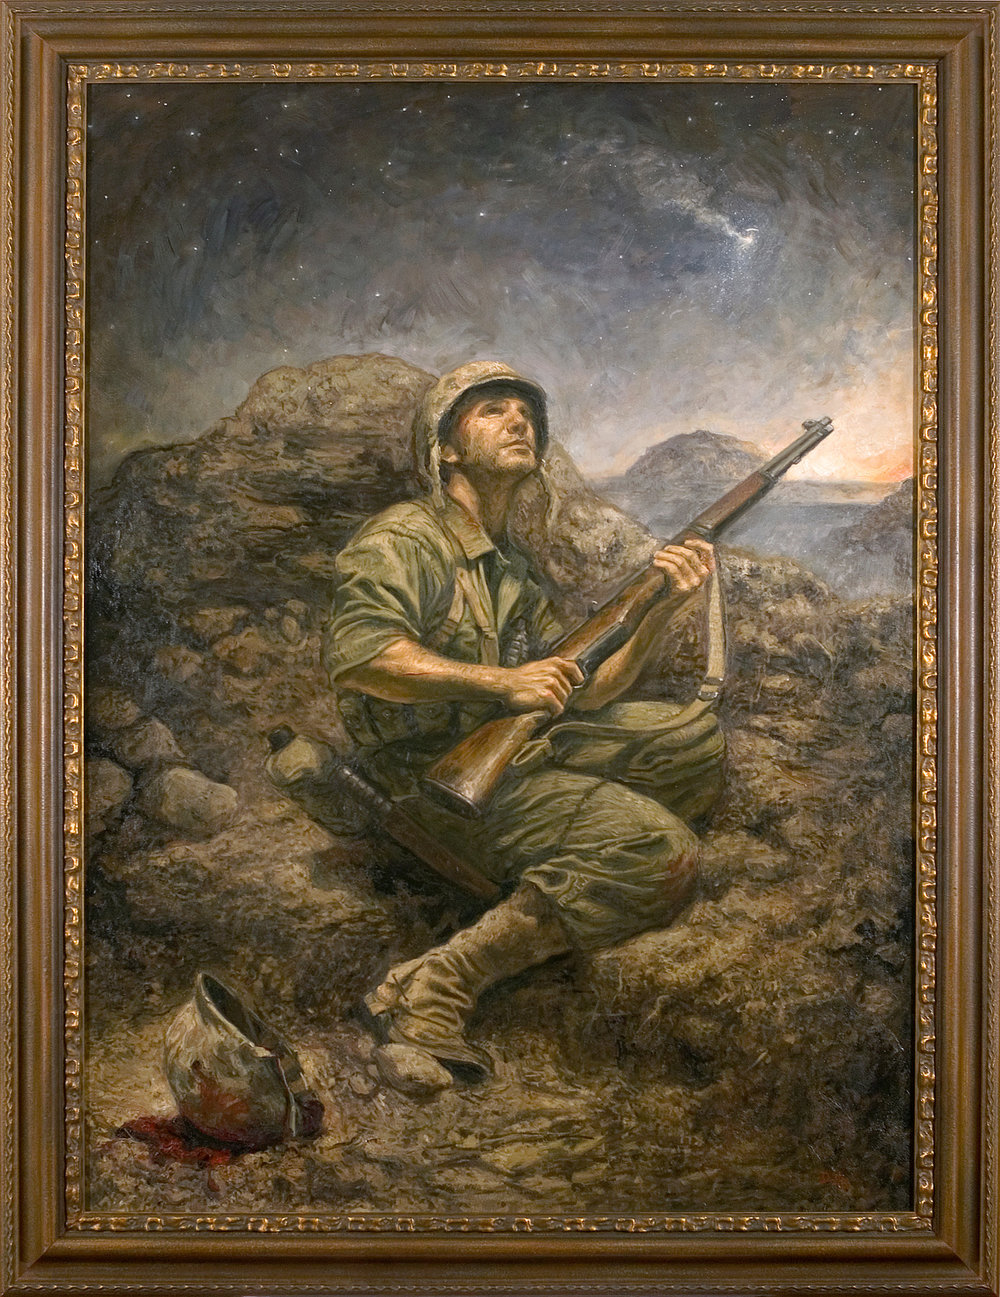 Honoring The Spirit Iwo Jima Painting Framed Large.jpg